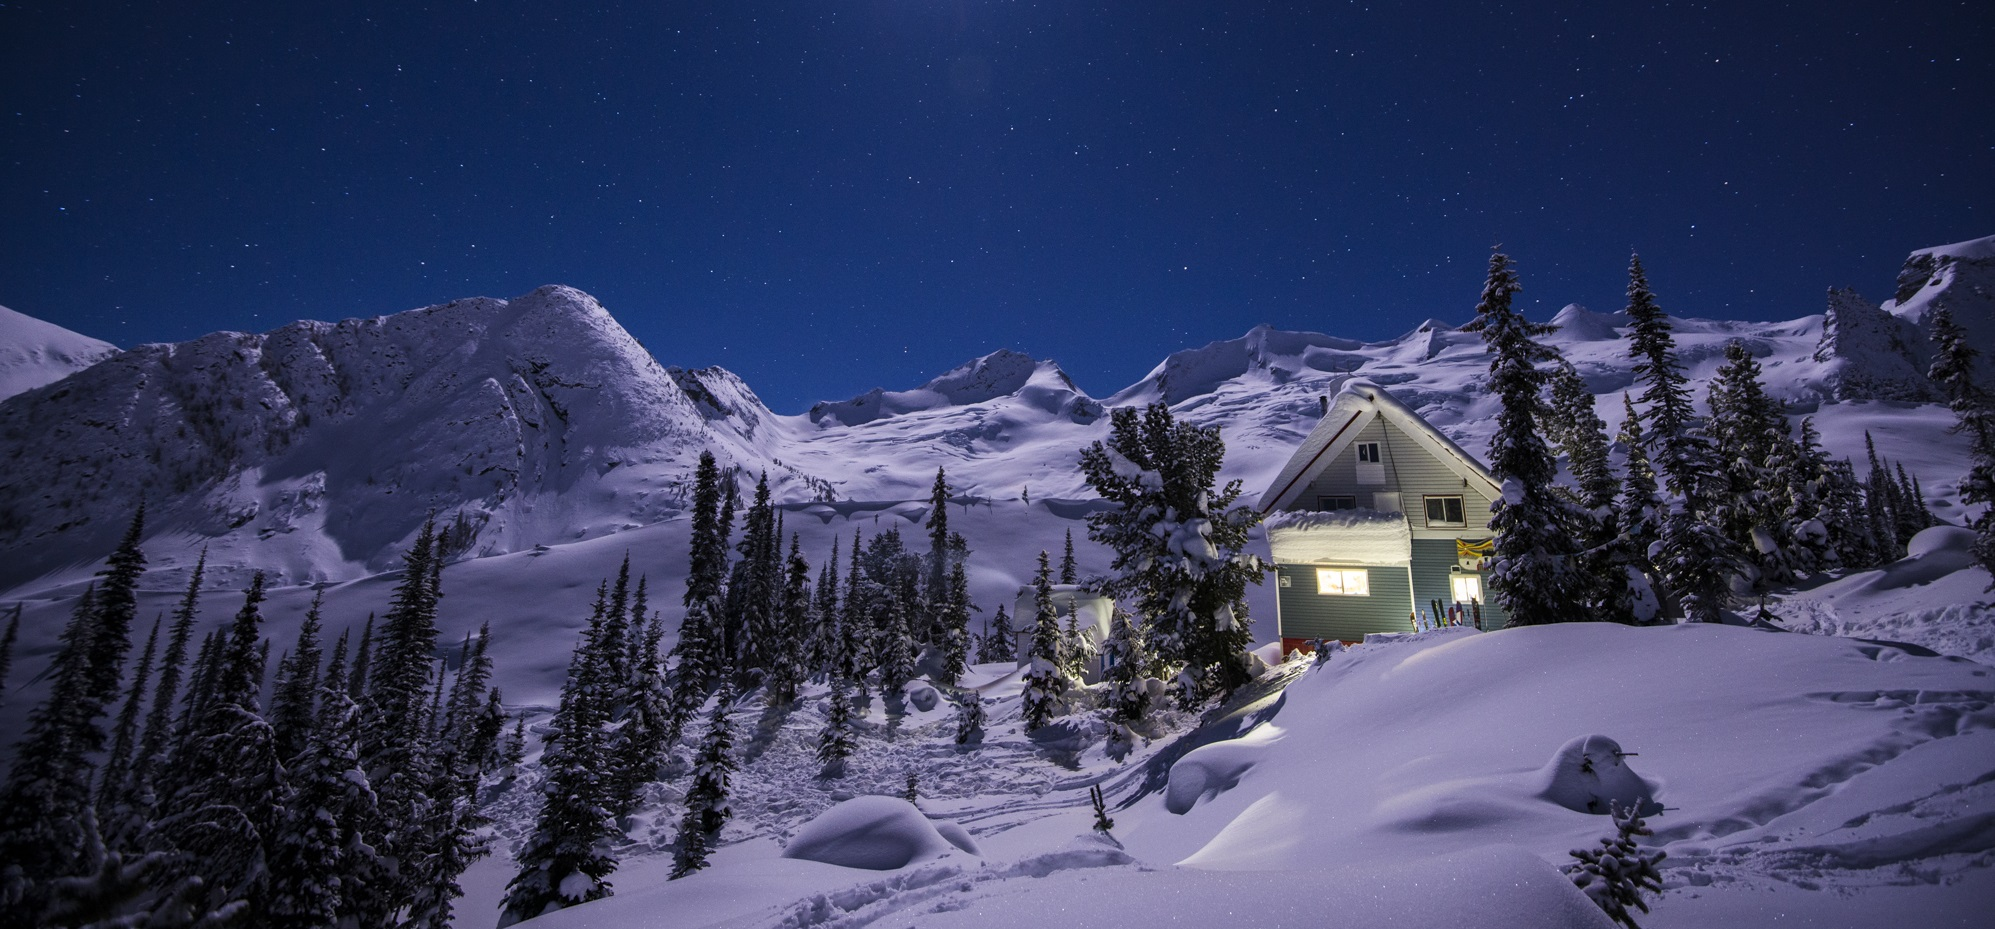 Solid Shelter for Backcountry Touring: An Overview of Yurts and Huts